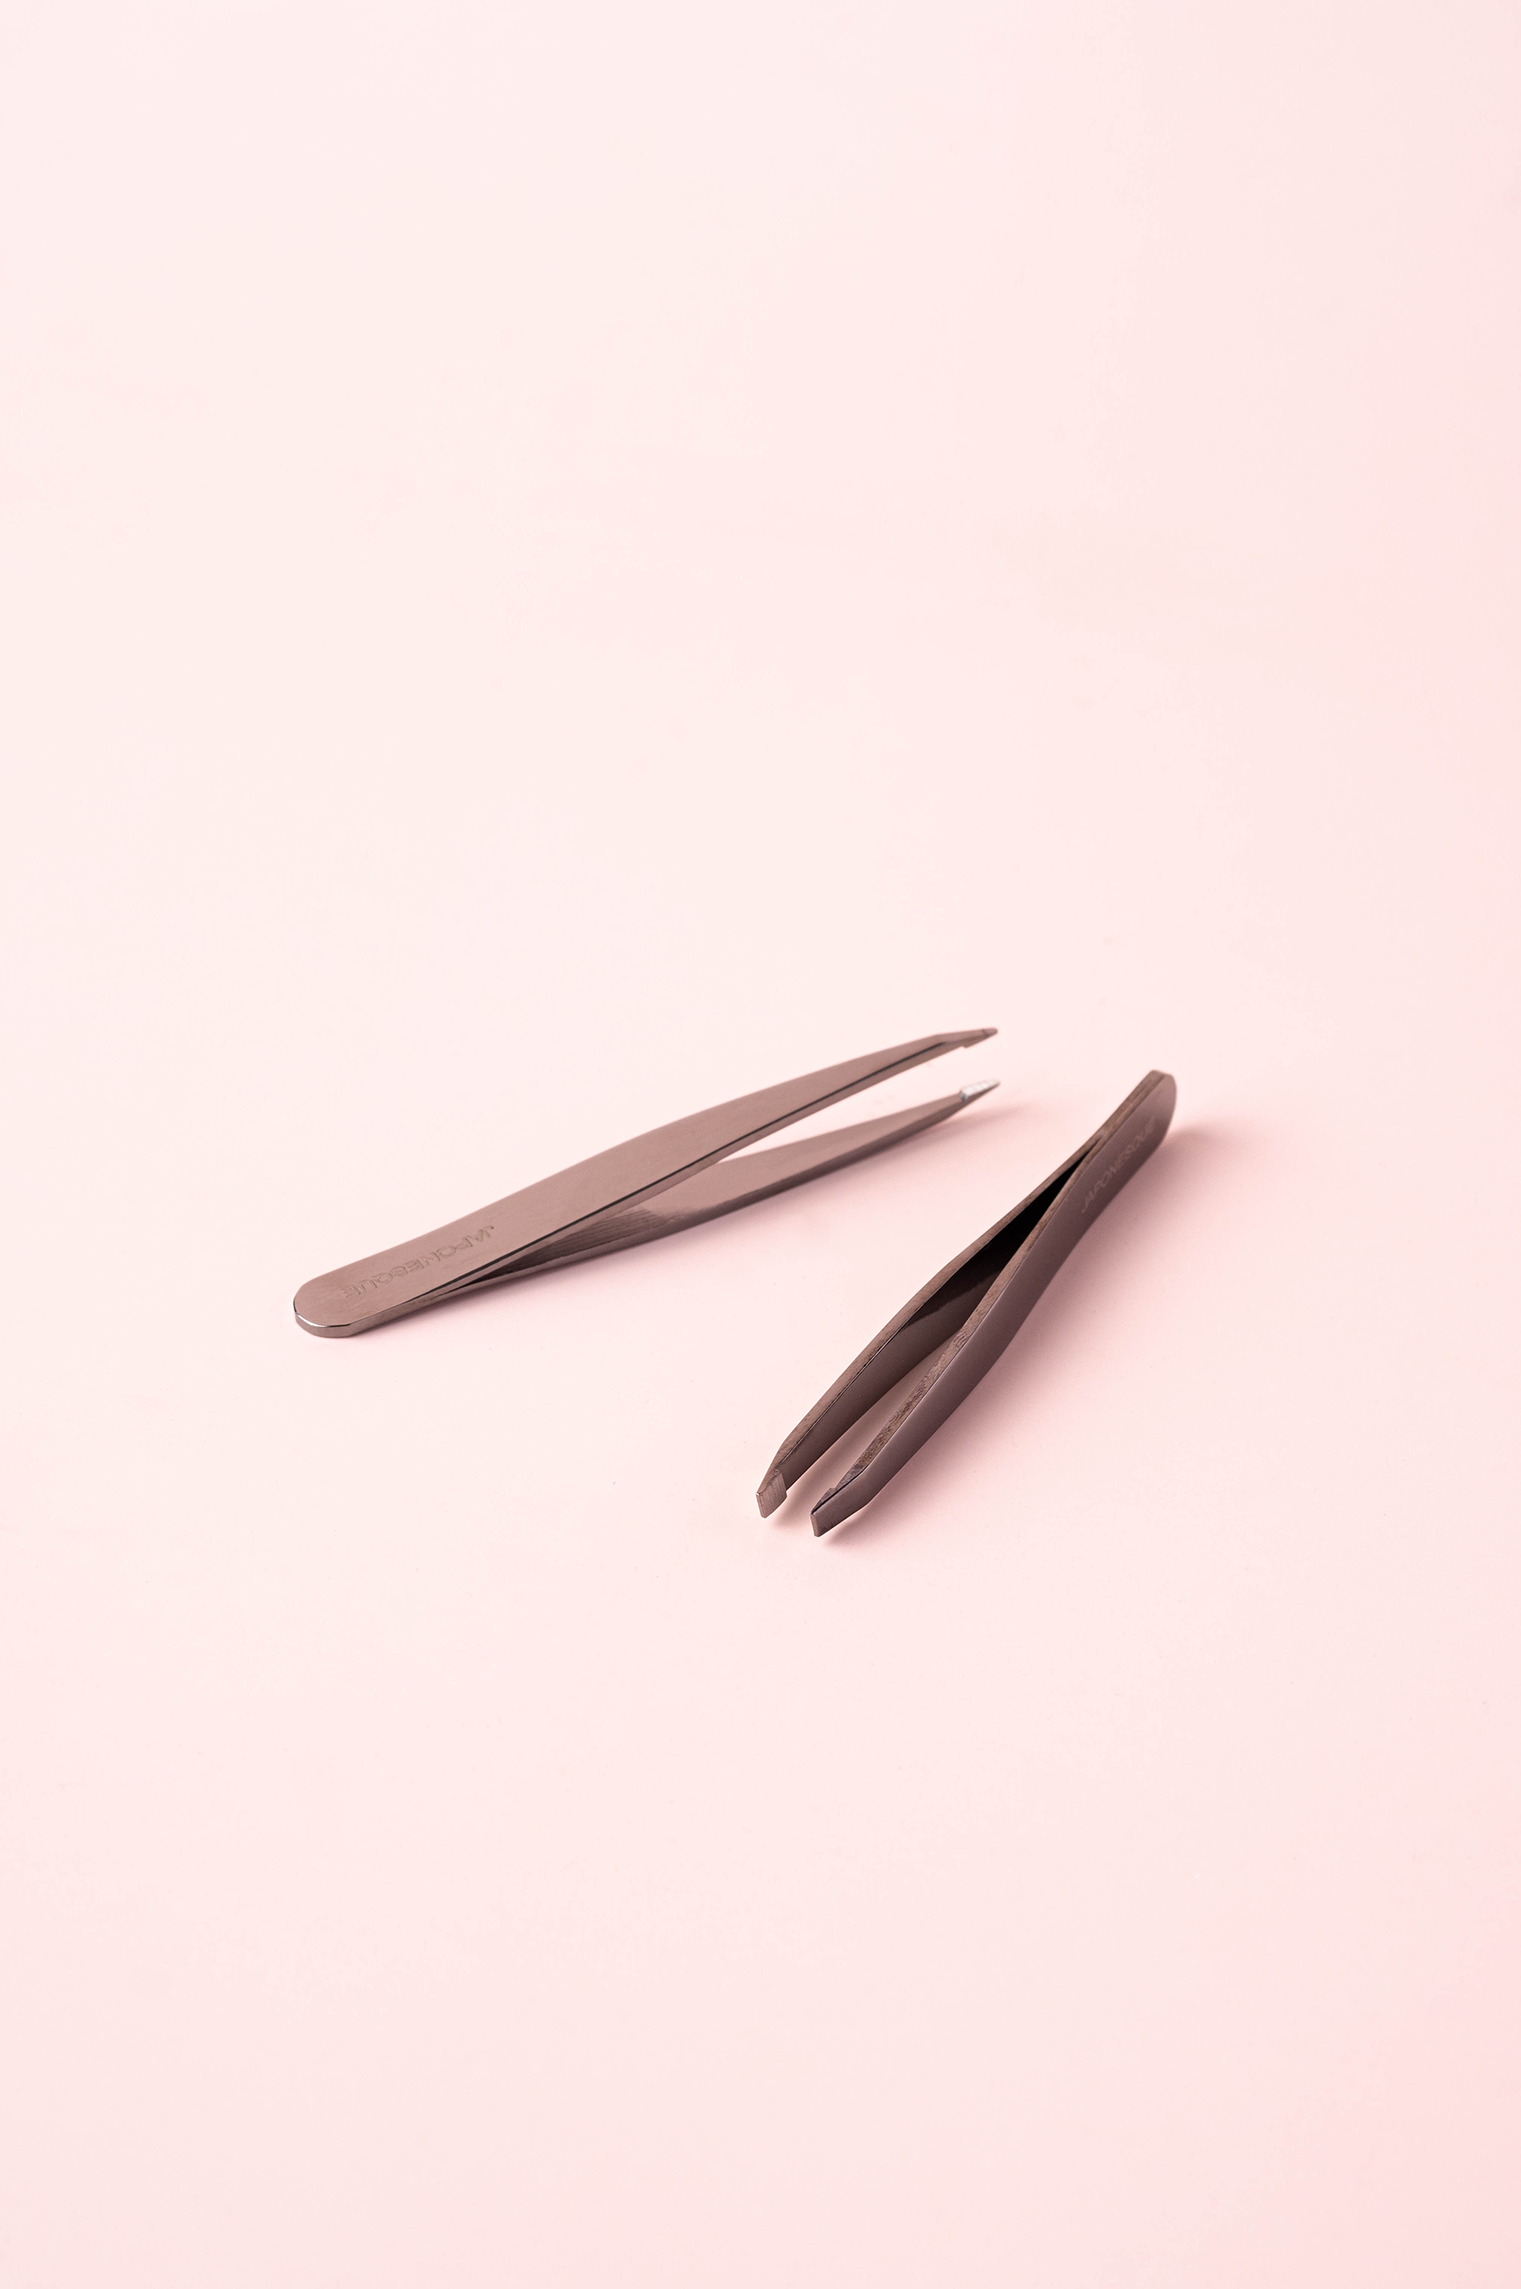 Pro Performance Tweezer Duo